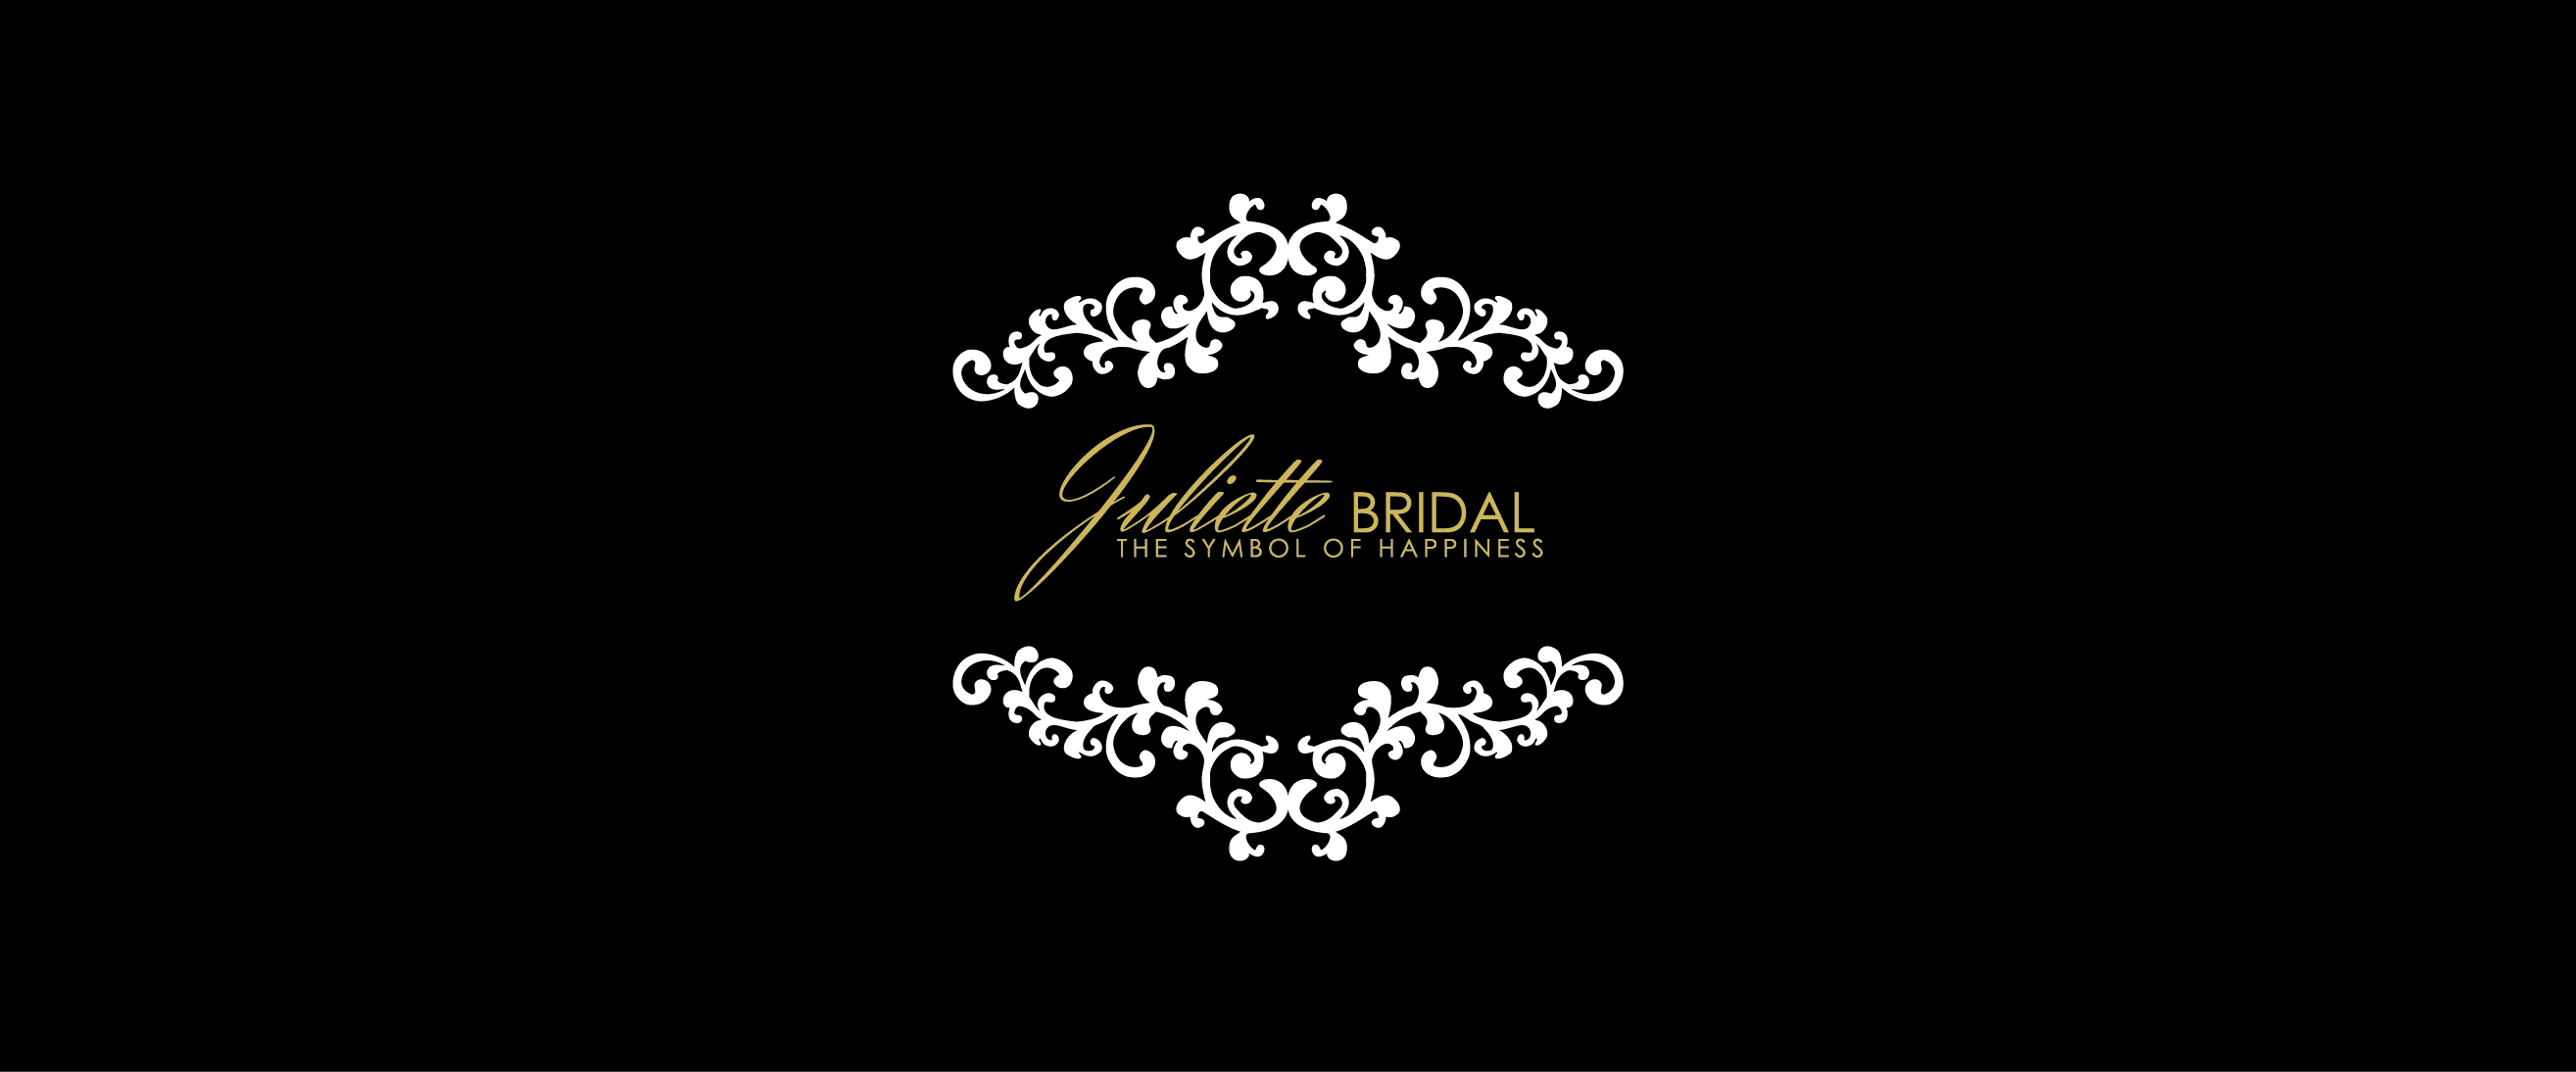 Juliette Bridal's Wedding Dress Collection